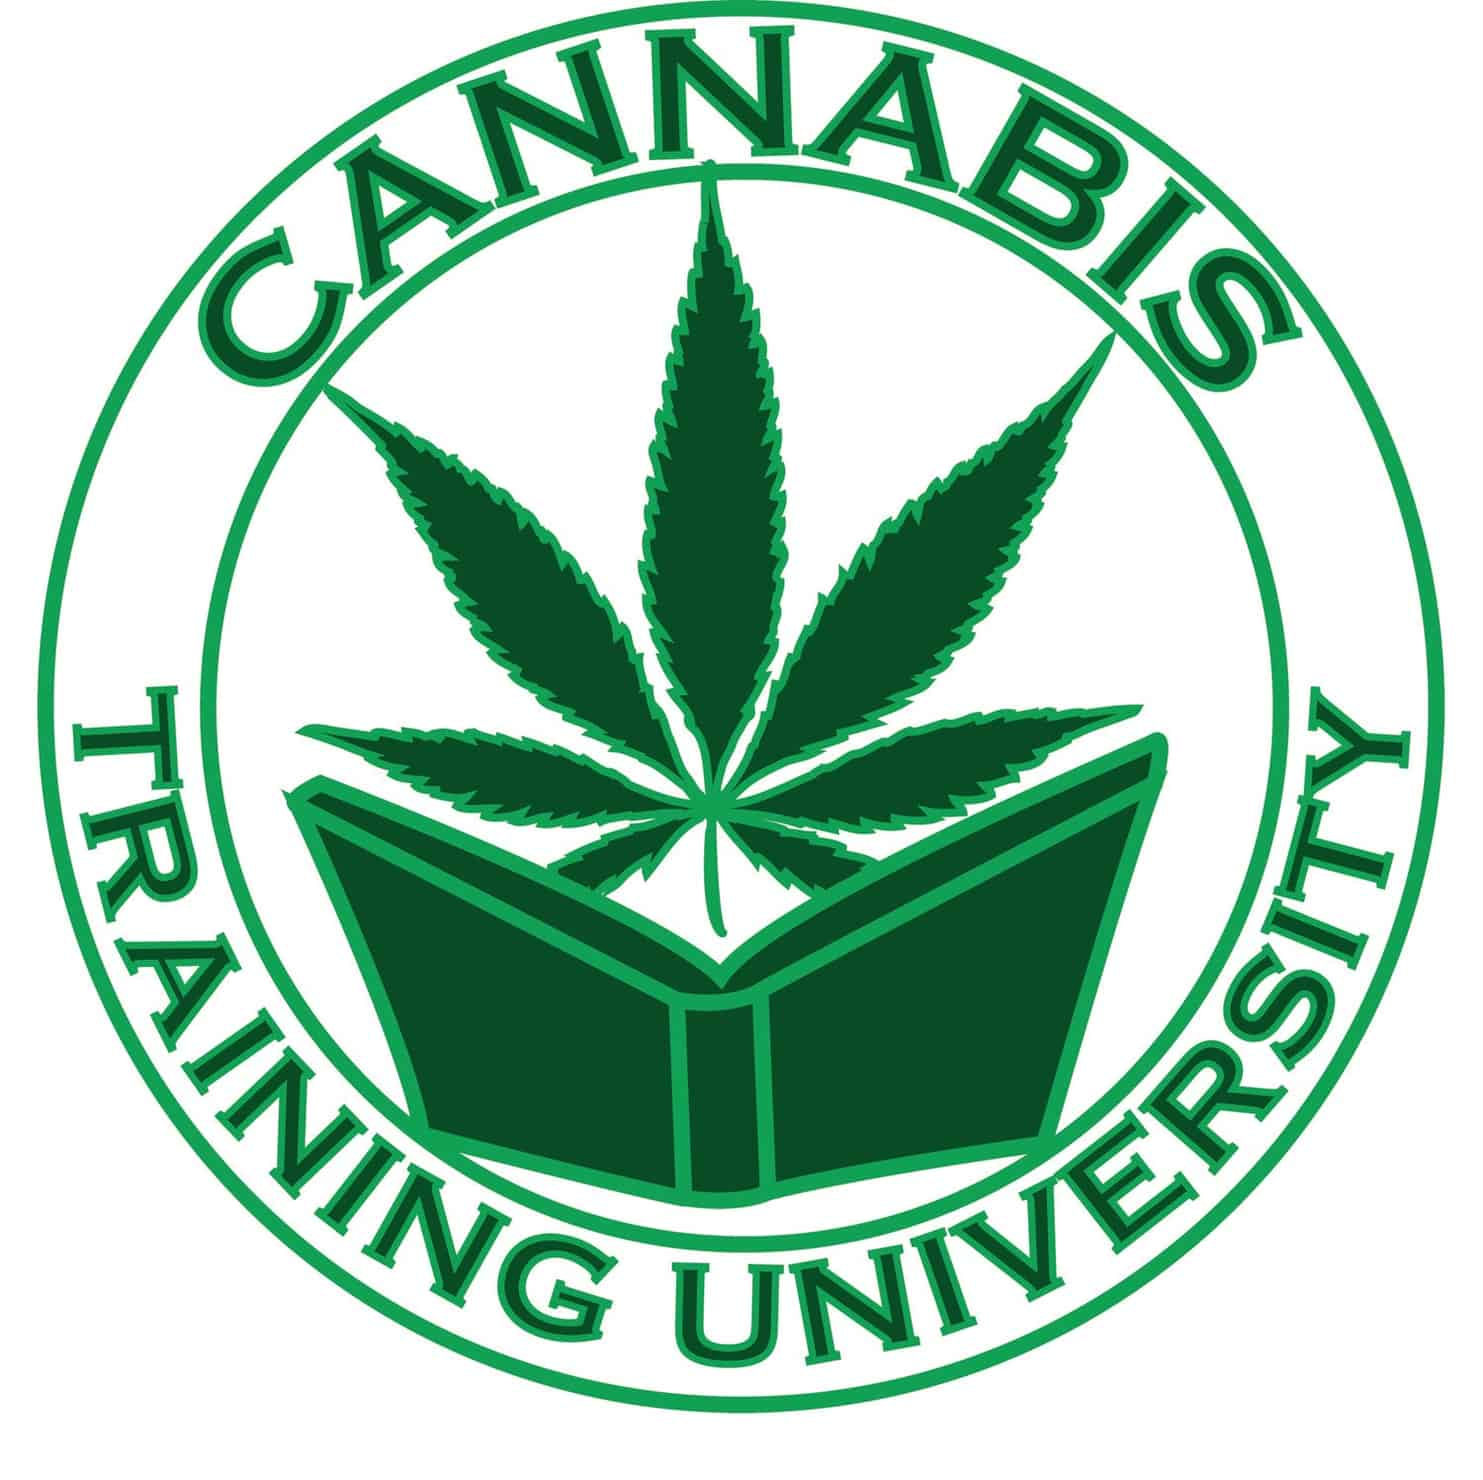 Cannabis Training University. Leading marijuana school. Cannabis training destination. Leading THC university